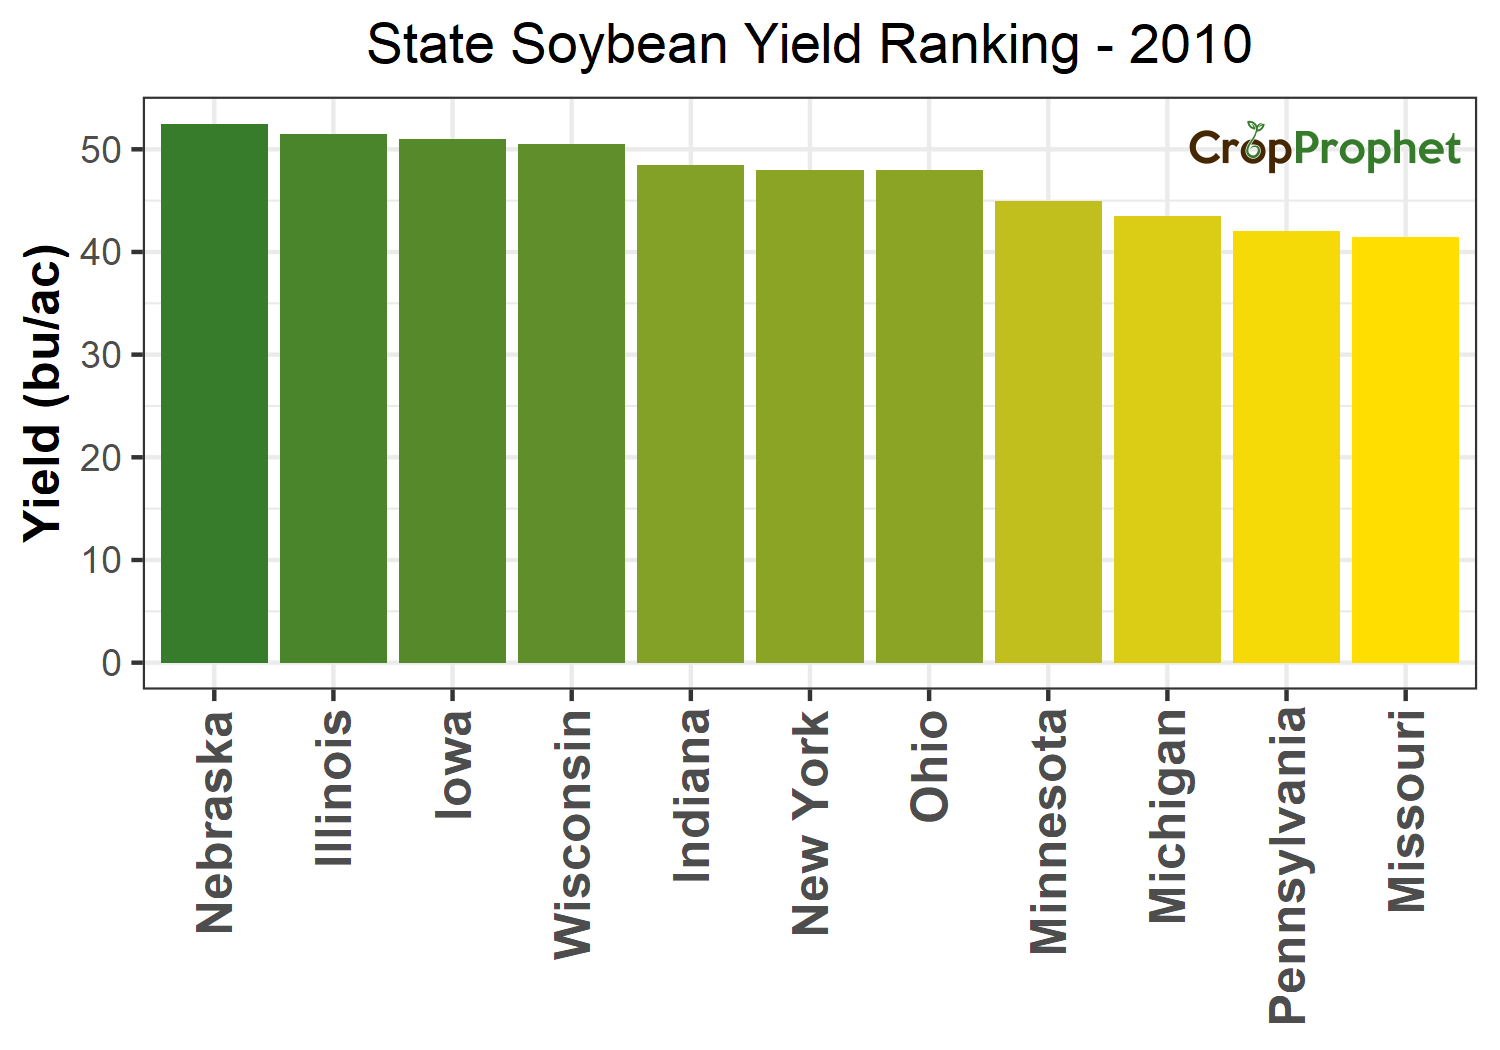 Soybean Production by State - 2010 Rankings